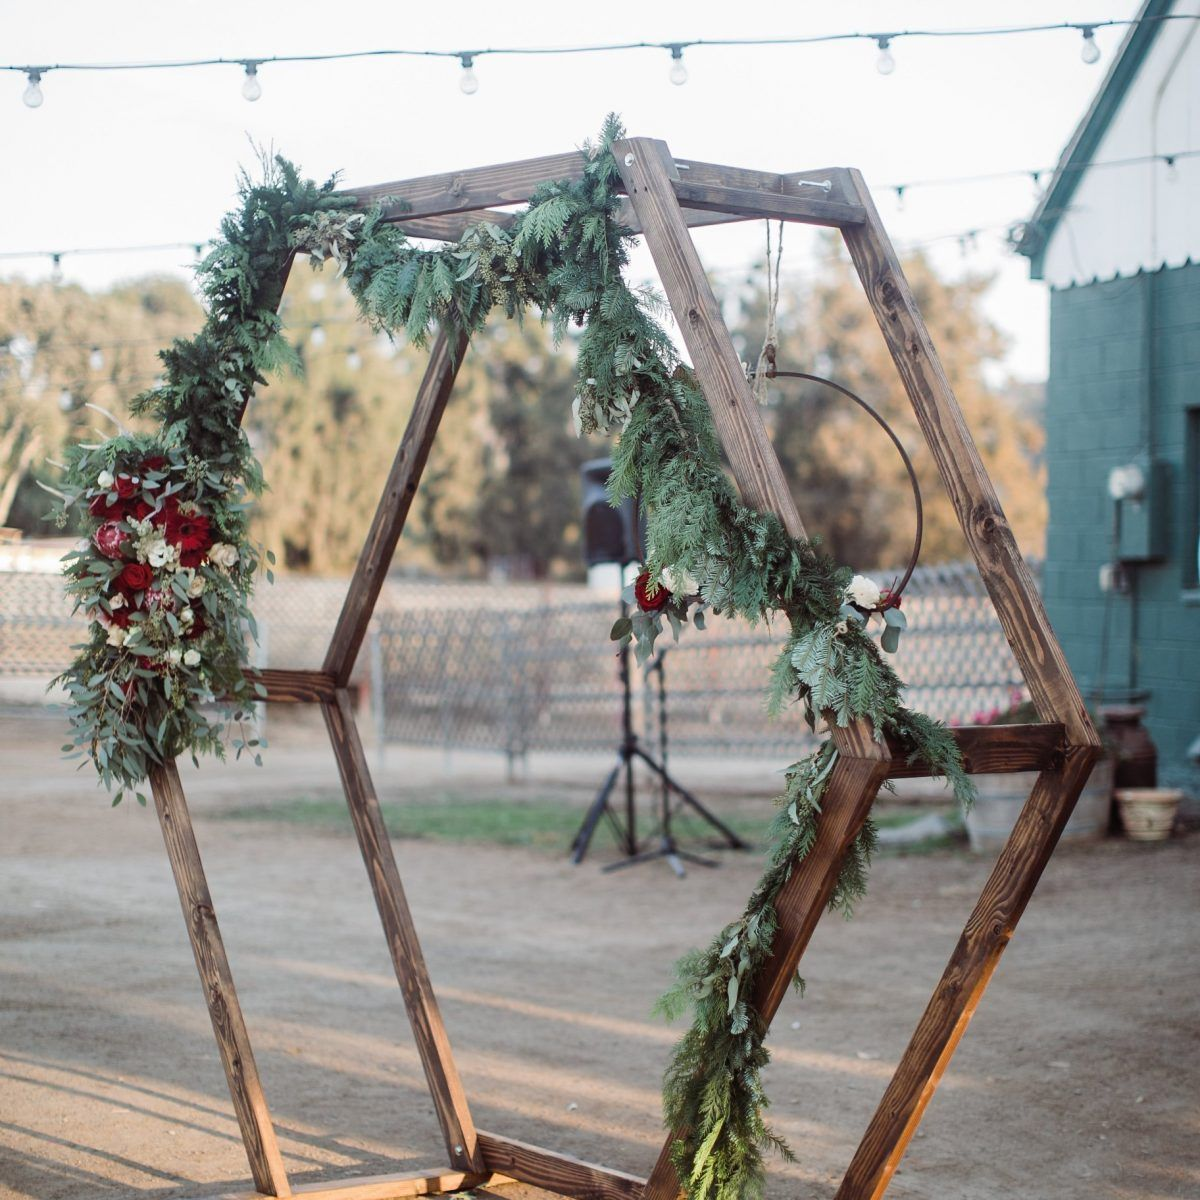 Hexagon Ceremony Arch In 2020 Wedding Arch For Sale Hexagon Wedding Wedding Arch